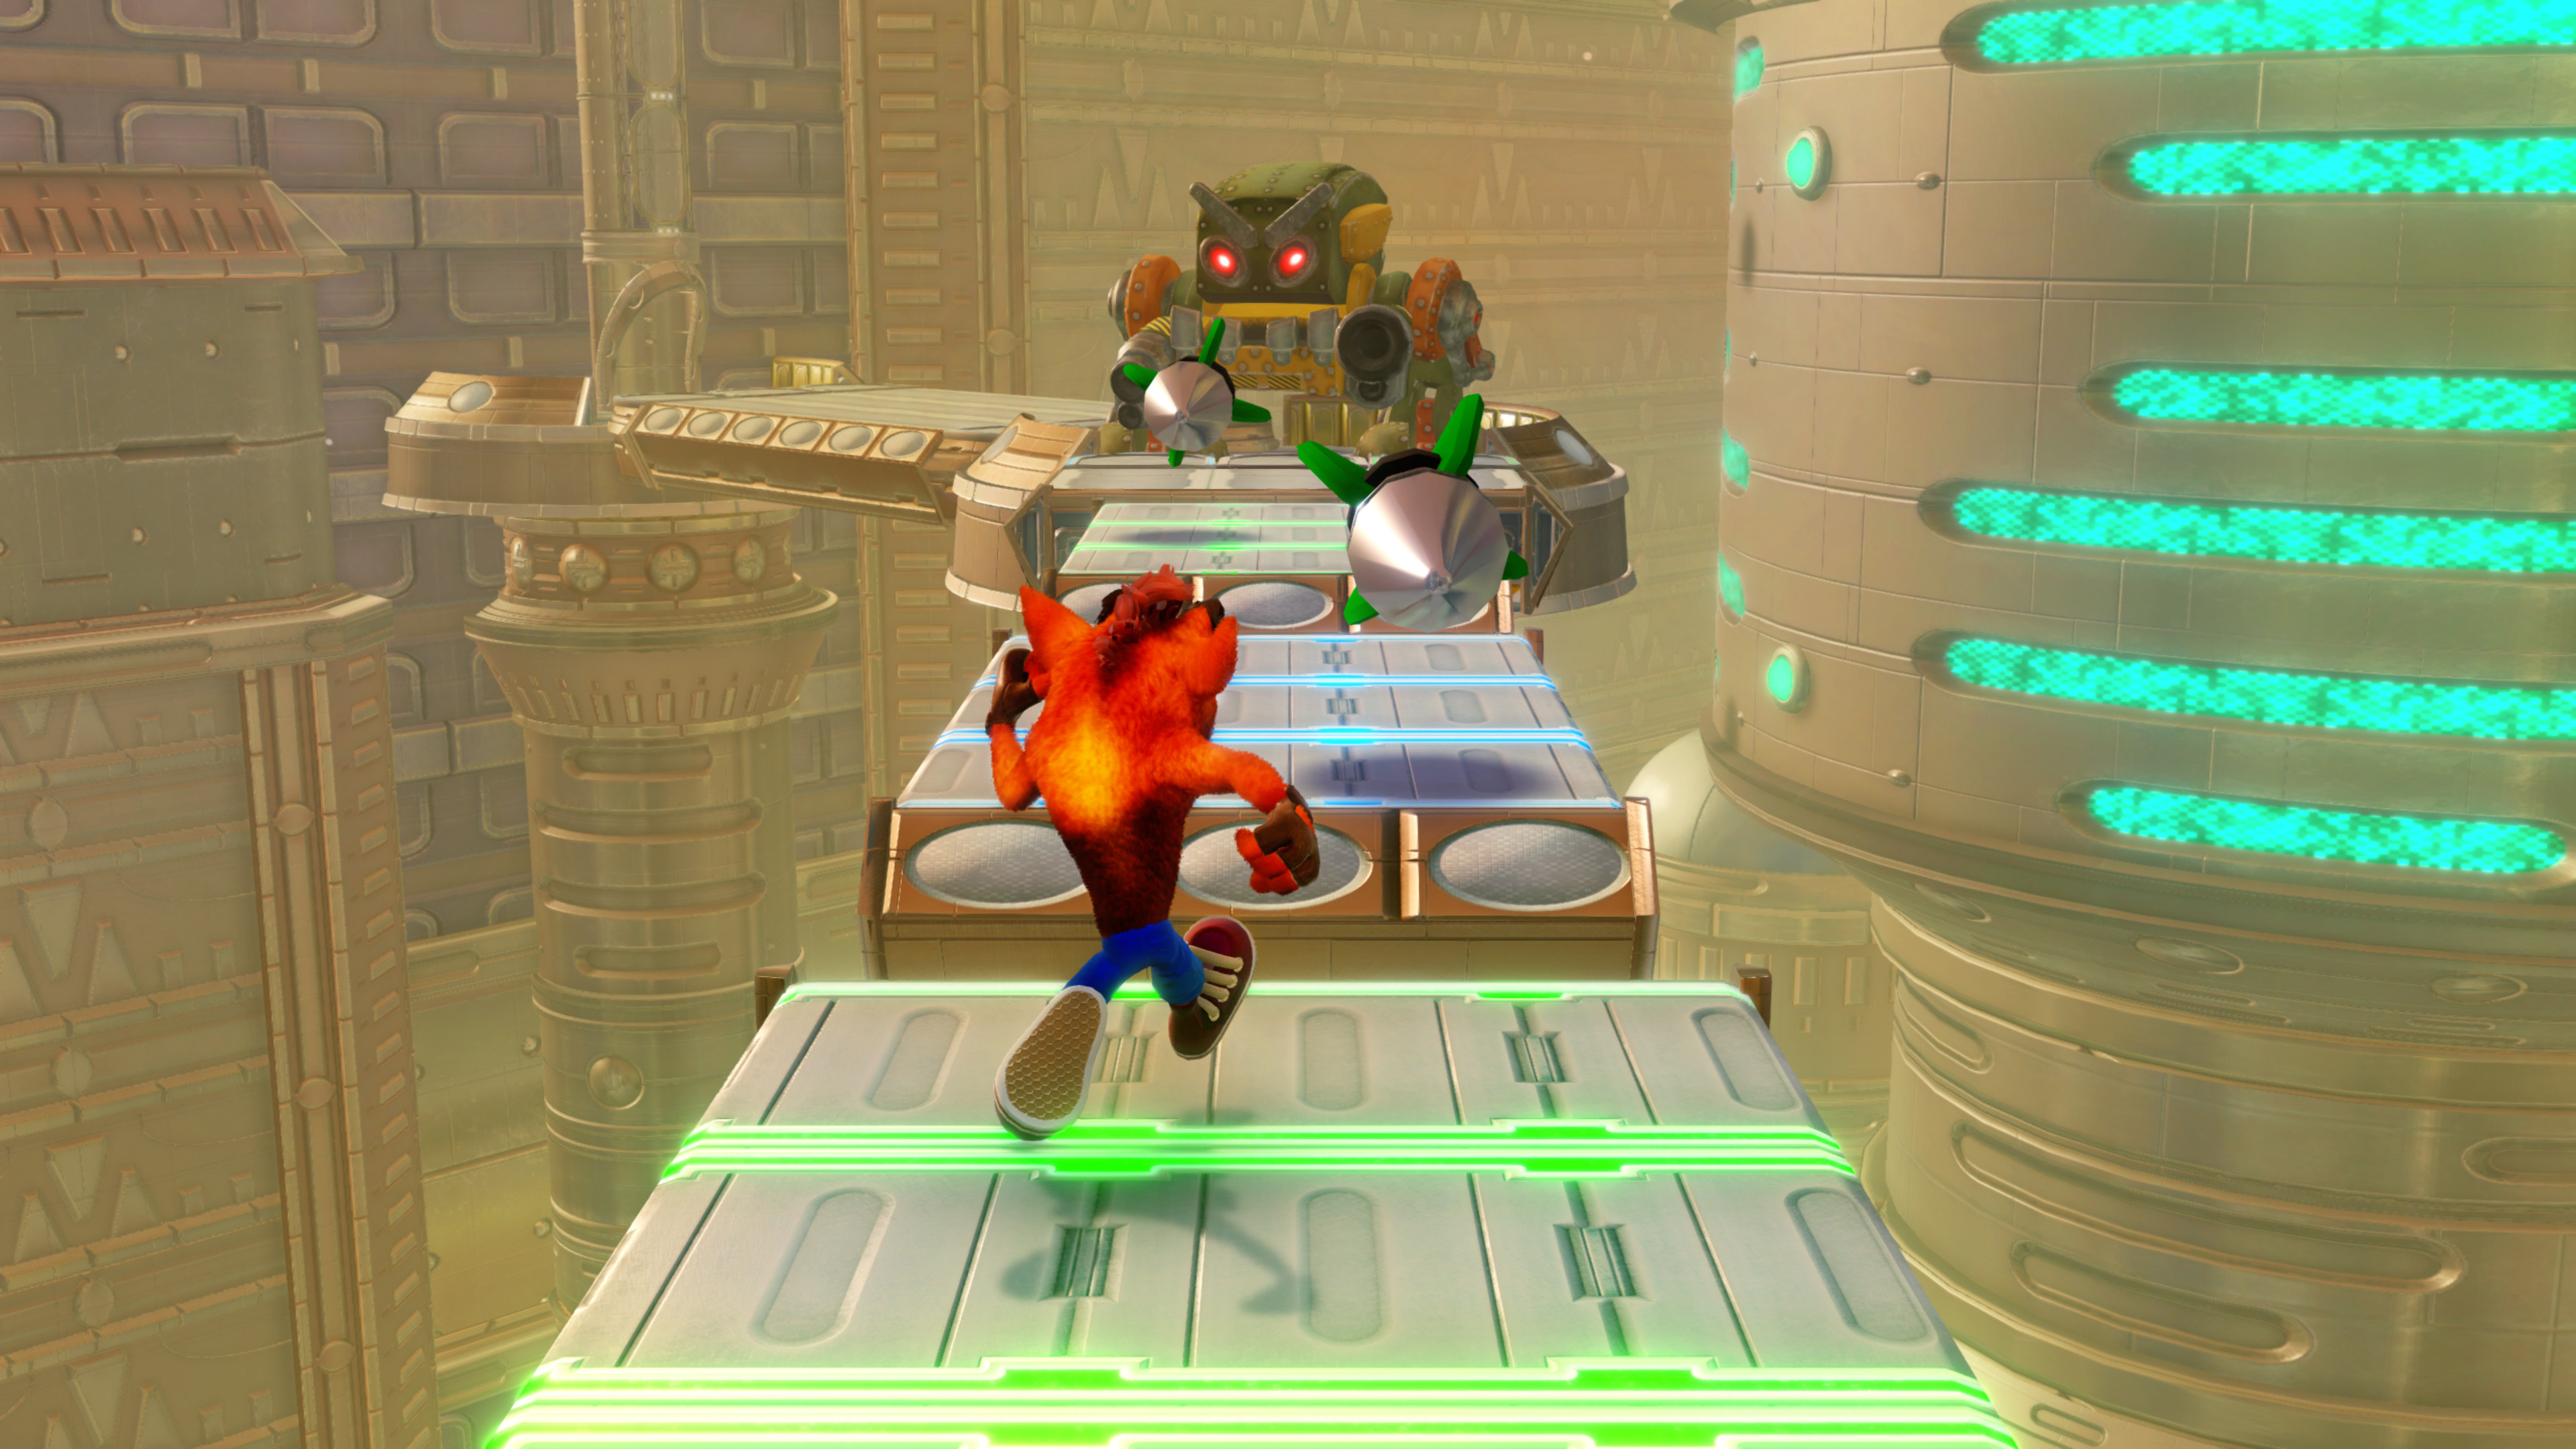 Crash Bandicoot N. Sane Trilogy - Future Tense - Crash Bandicoot N. Sane Trilogy